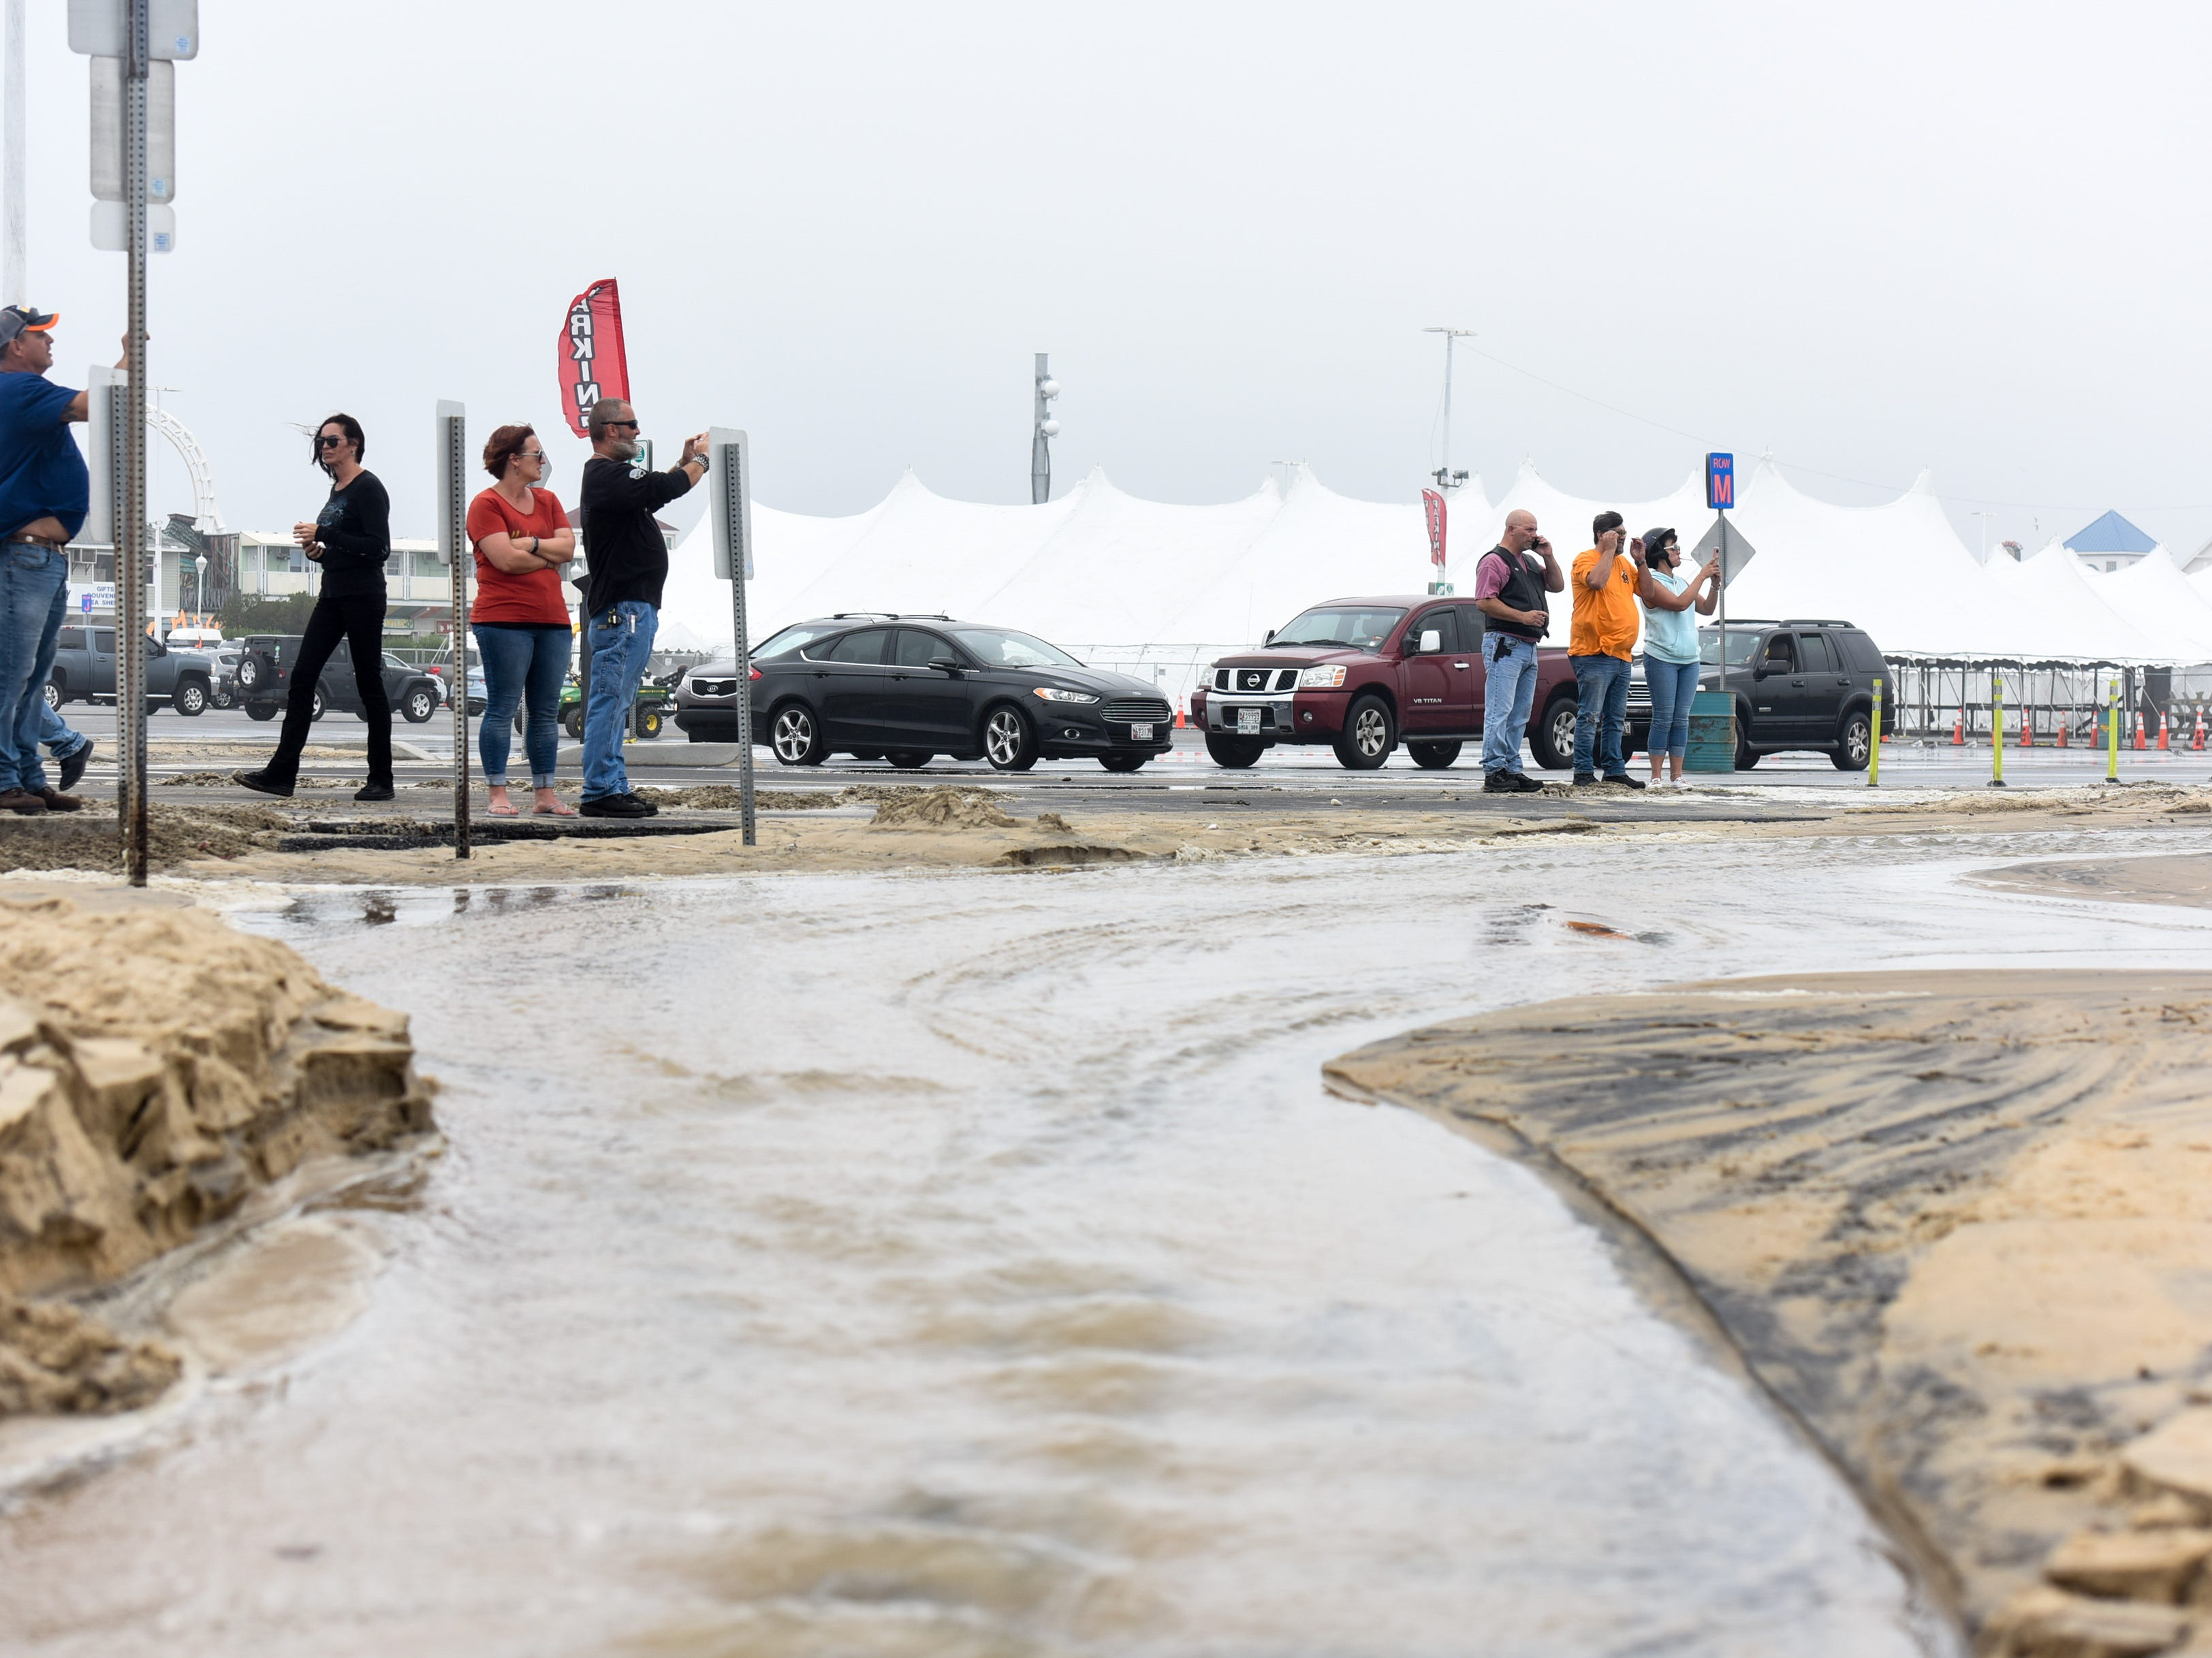 Visitors take photos at the Ocean City inlet. The area experienced mild flooding, wind and rough surf on Thursday, Sept 13.